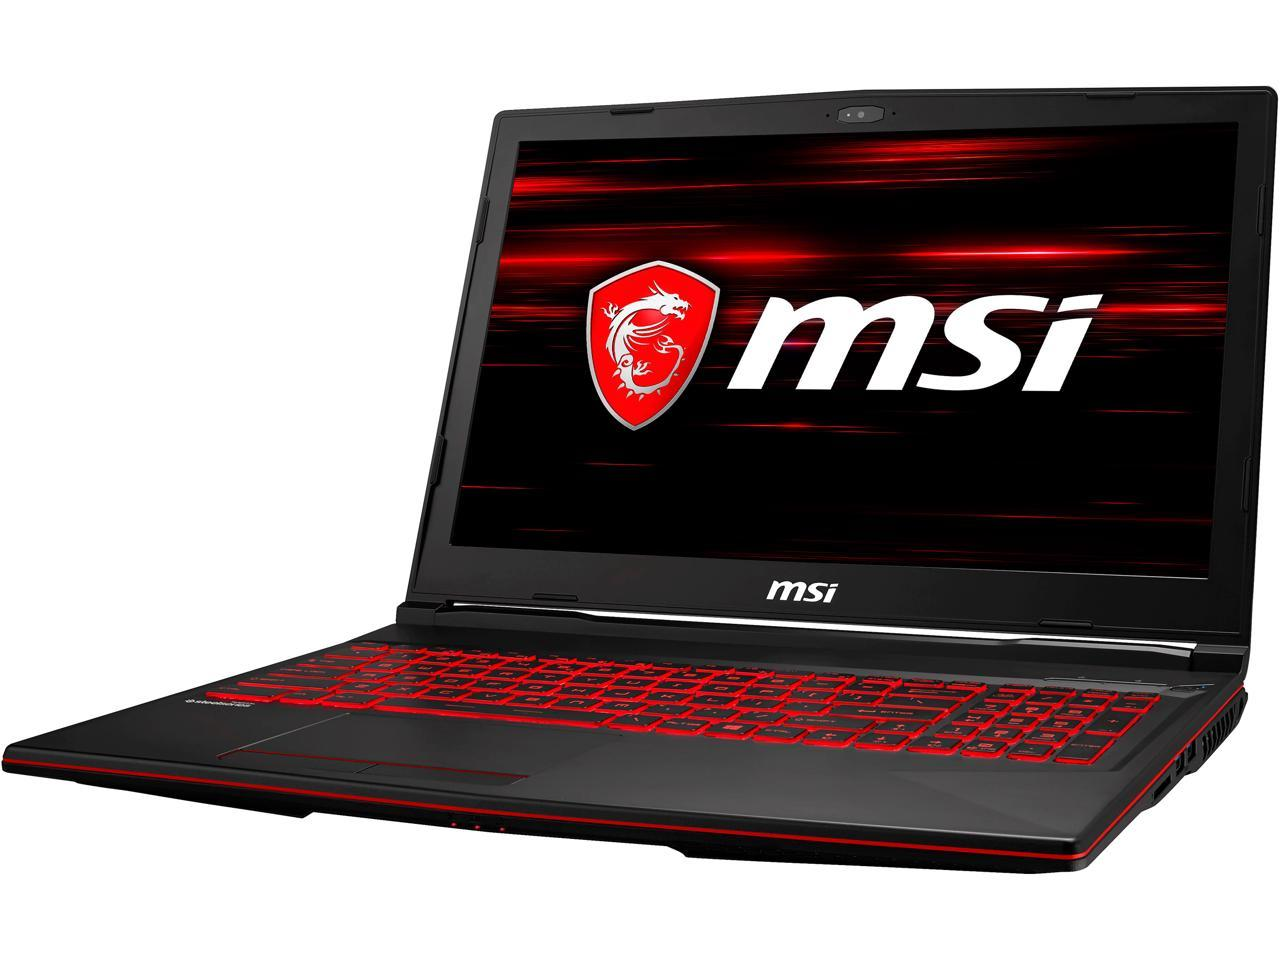 "MSI 15.6"" FHD Laptop (6-Core i7-8750H / 16GB / 1TB + 128GB / 6GB Video)"